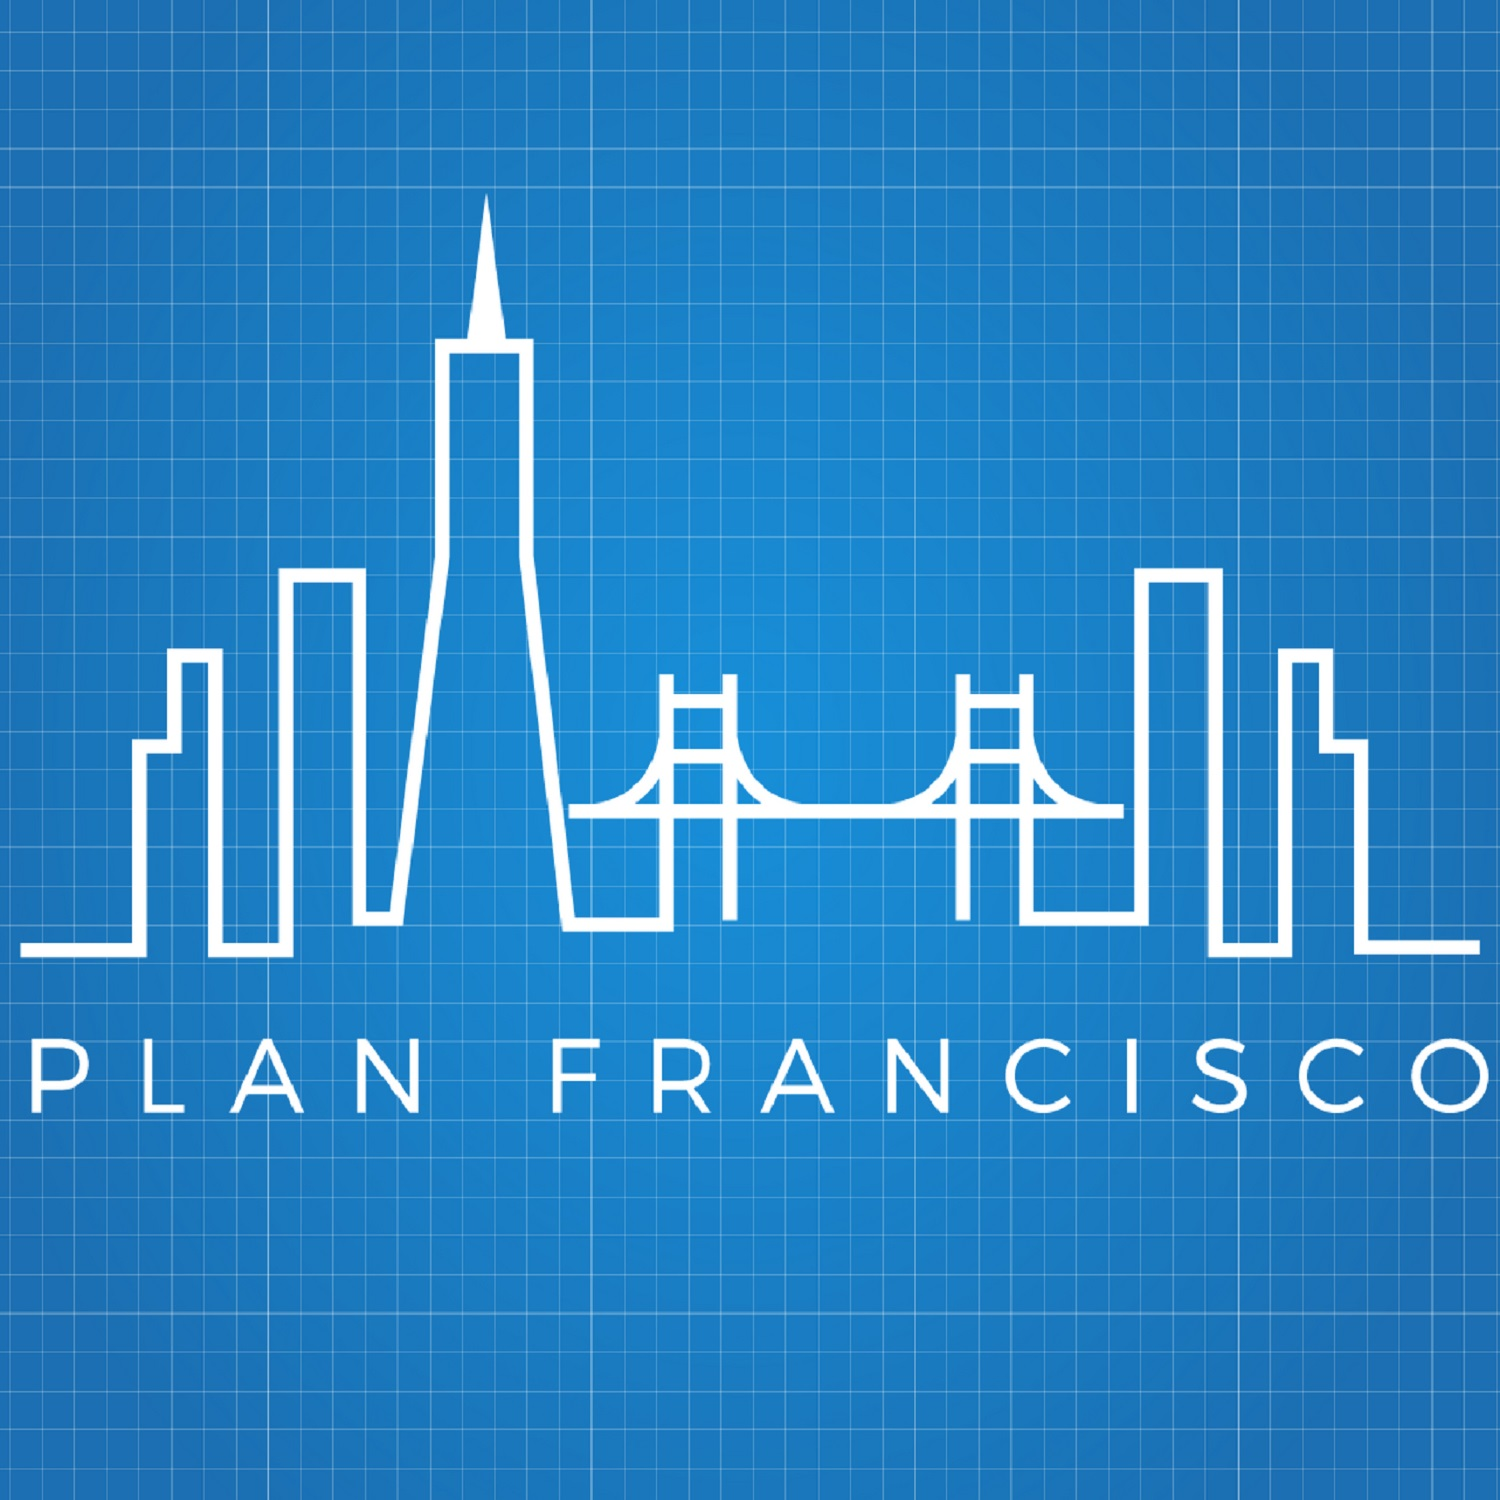 Plan Francisco